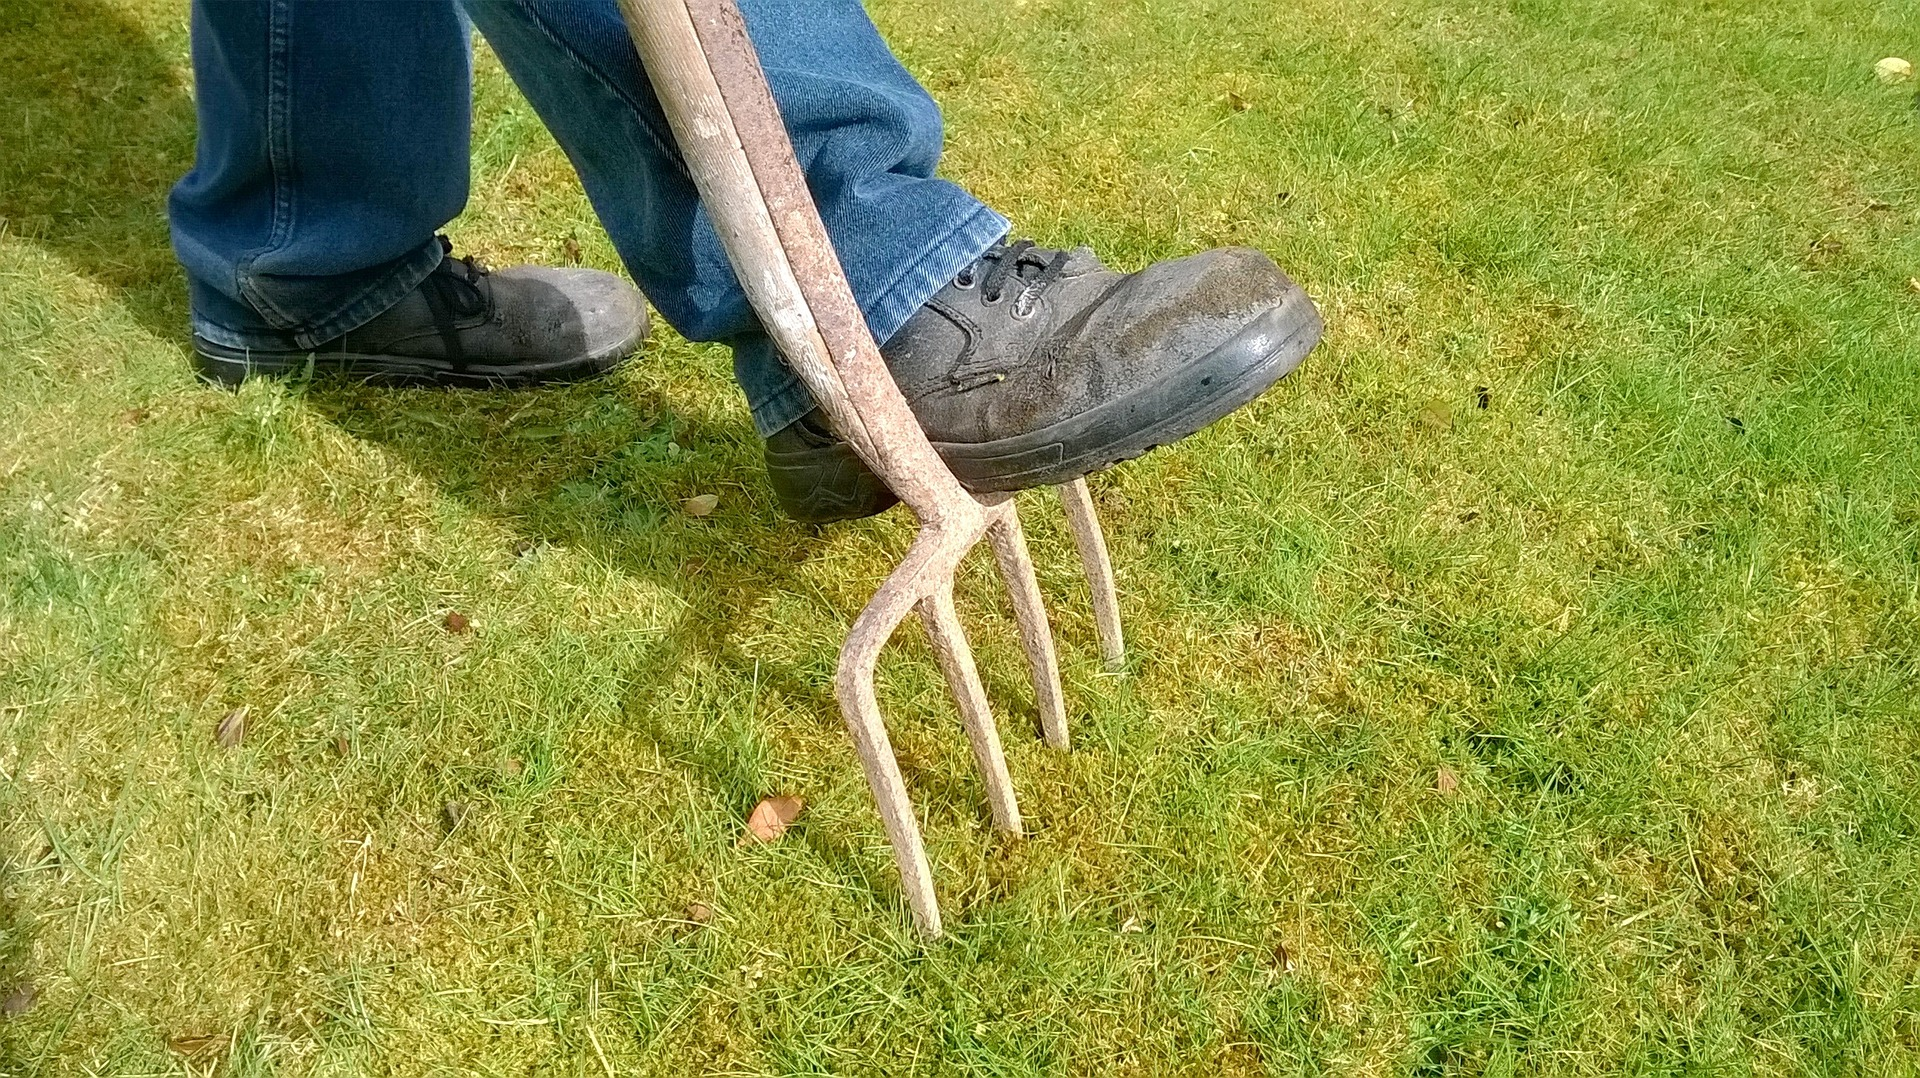 A man in boots aerating a lawn.